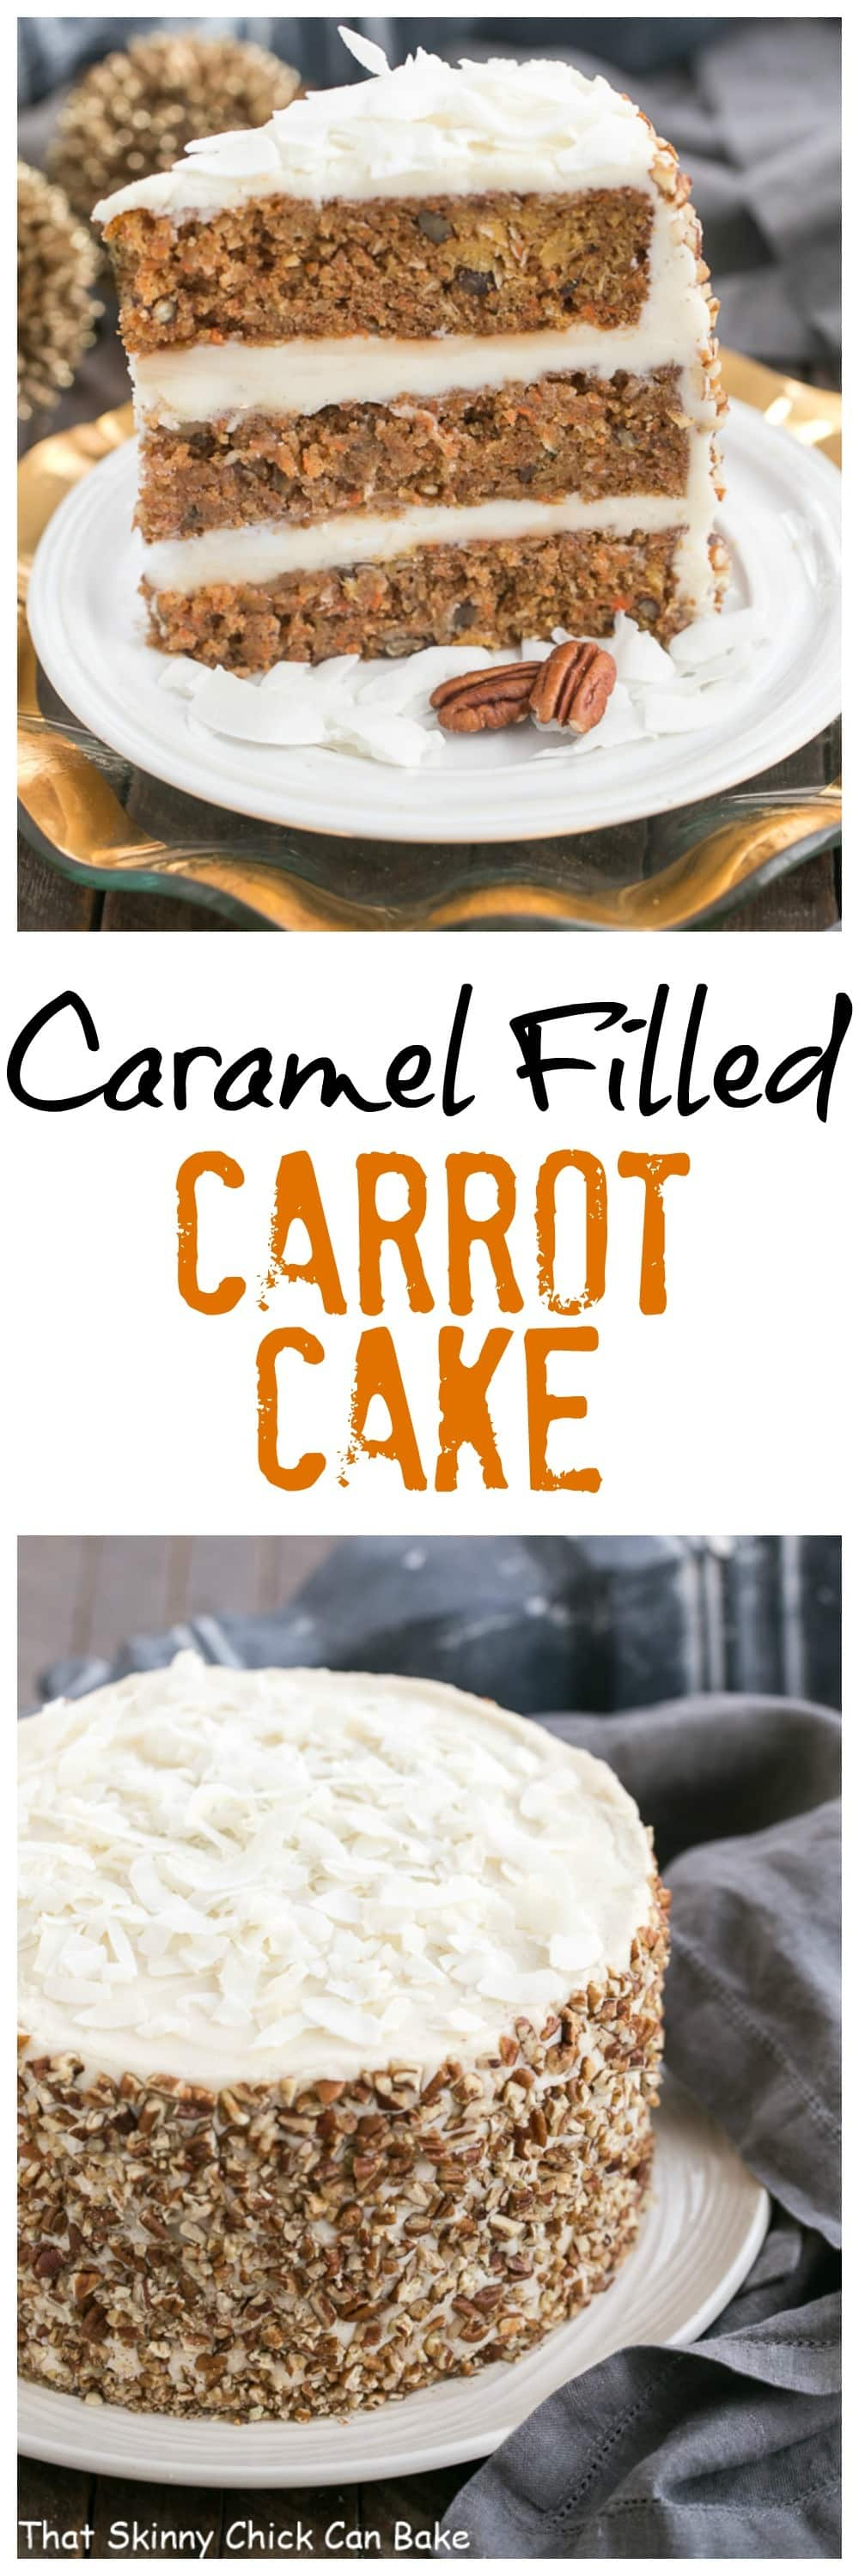 caramel cake filling carrot cake with caramel filling and cheese frosting 2449